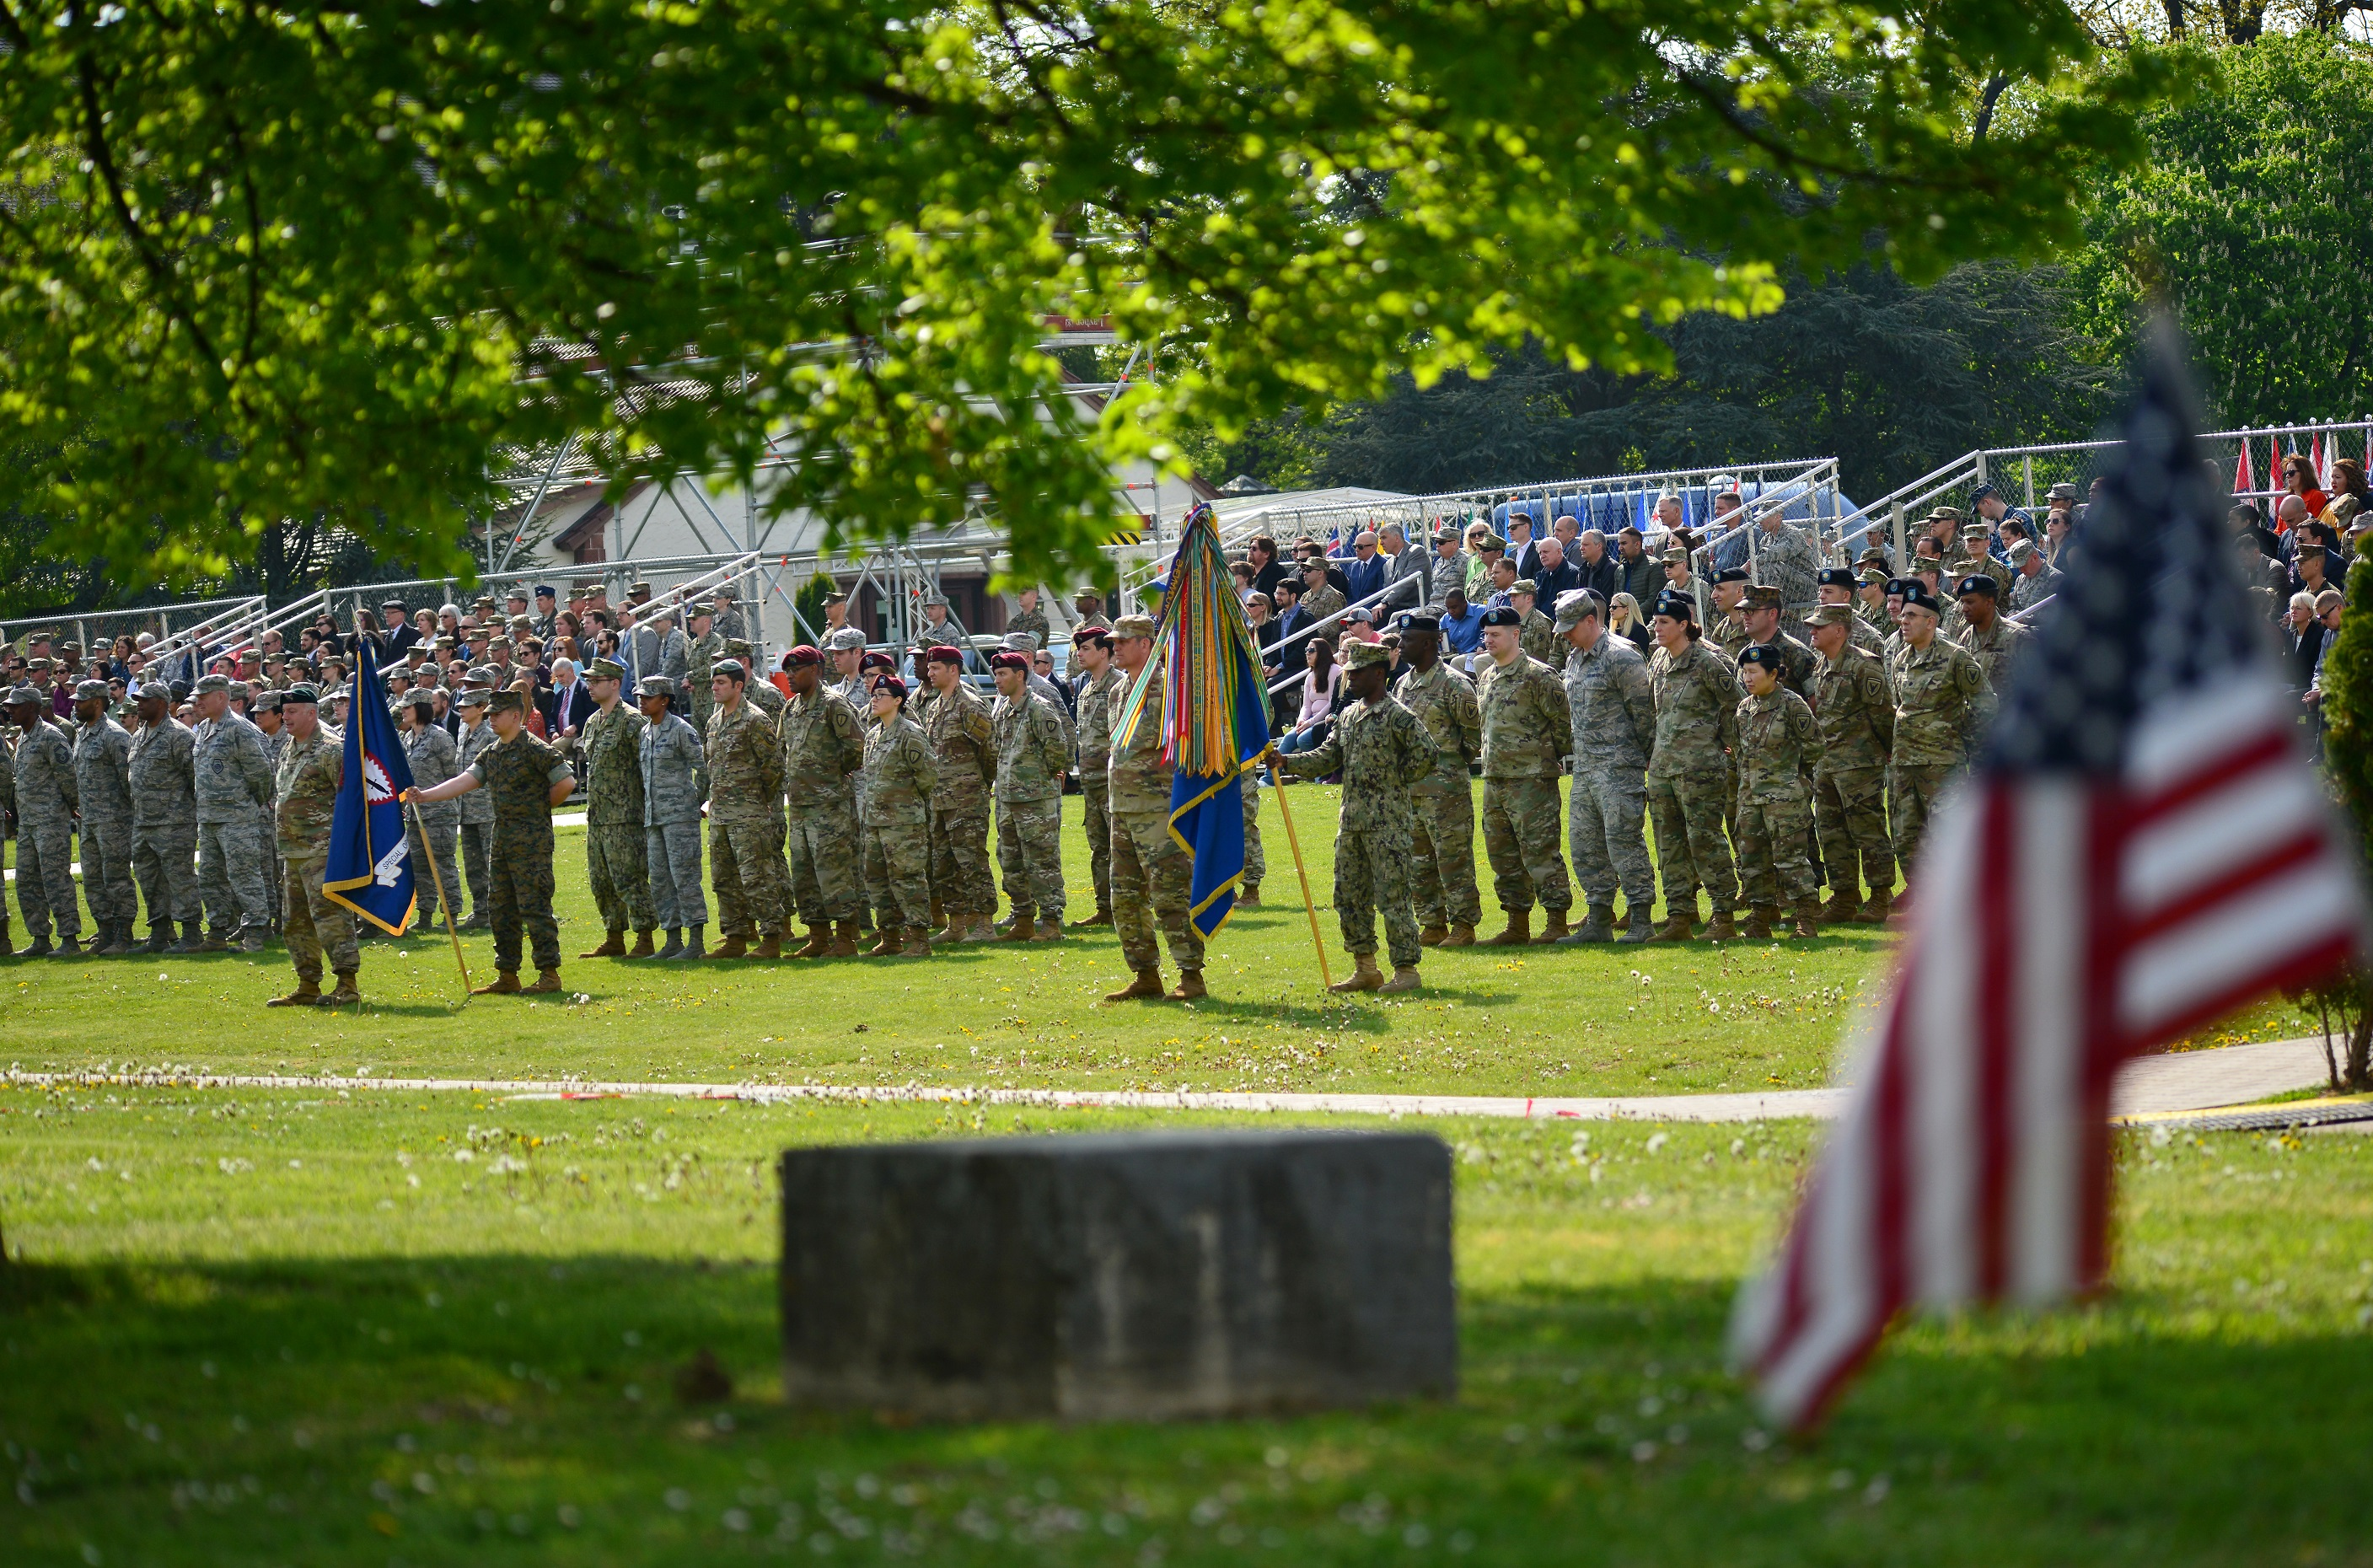 U.S. European Command (USEUCOM) held a change of command ceremony today at Patch Barracks in Stuttgart, Germany, where U.S. Air Force Gen. Tod D. Wolters assumed command from U.S. Army Gen. Curtis M. Scaparrotti.